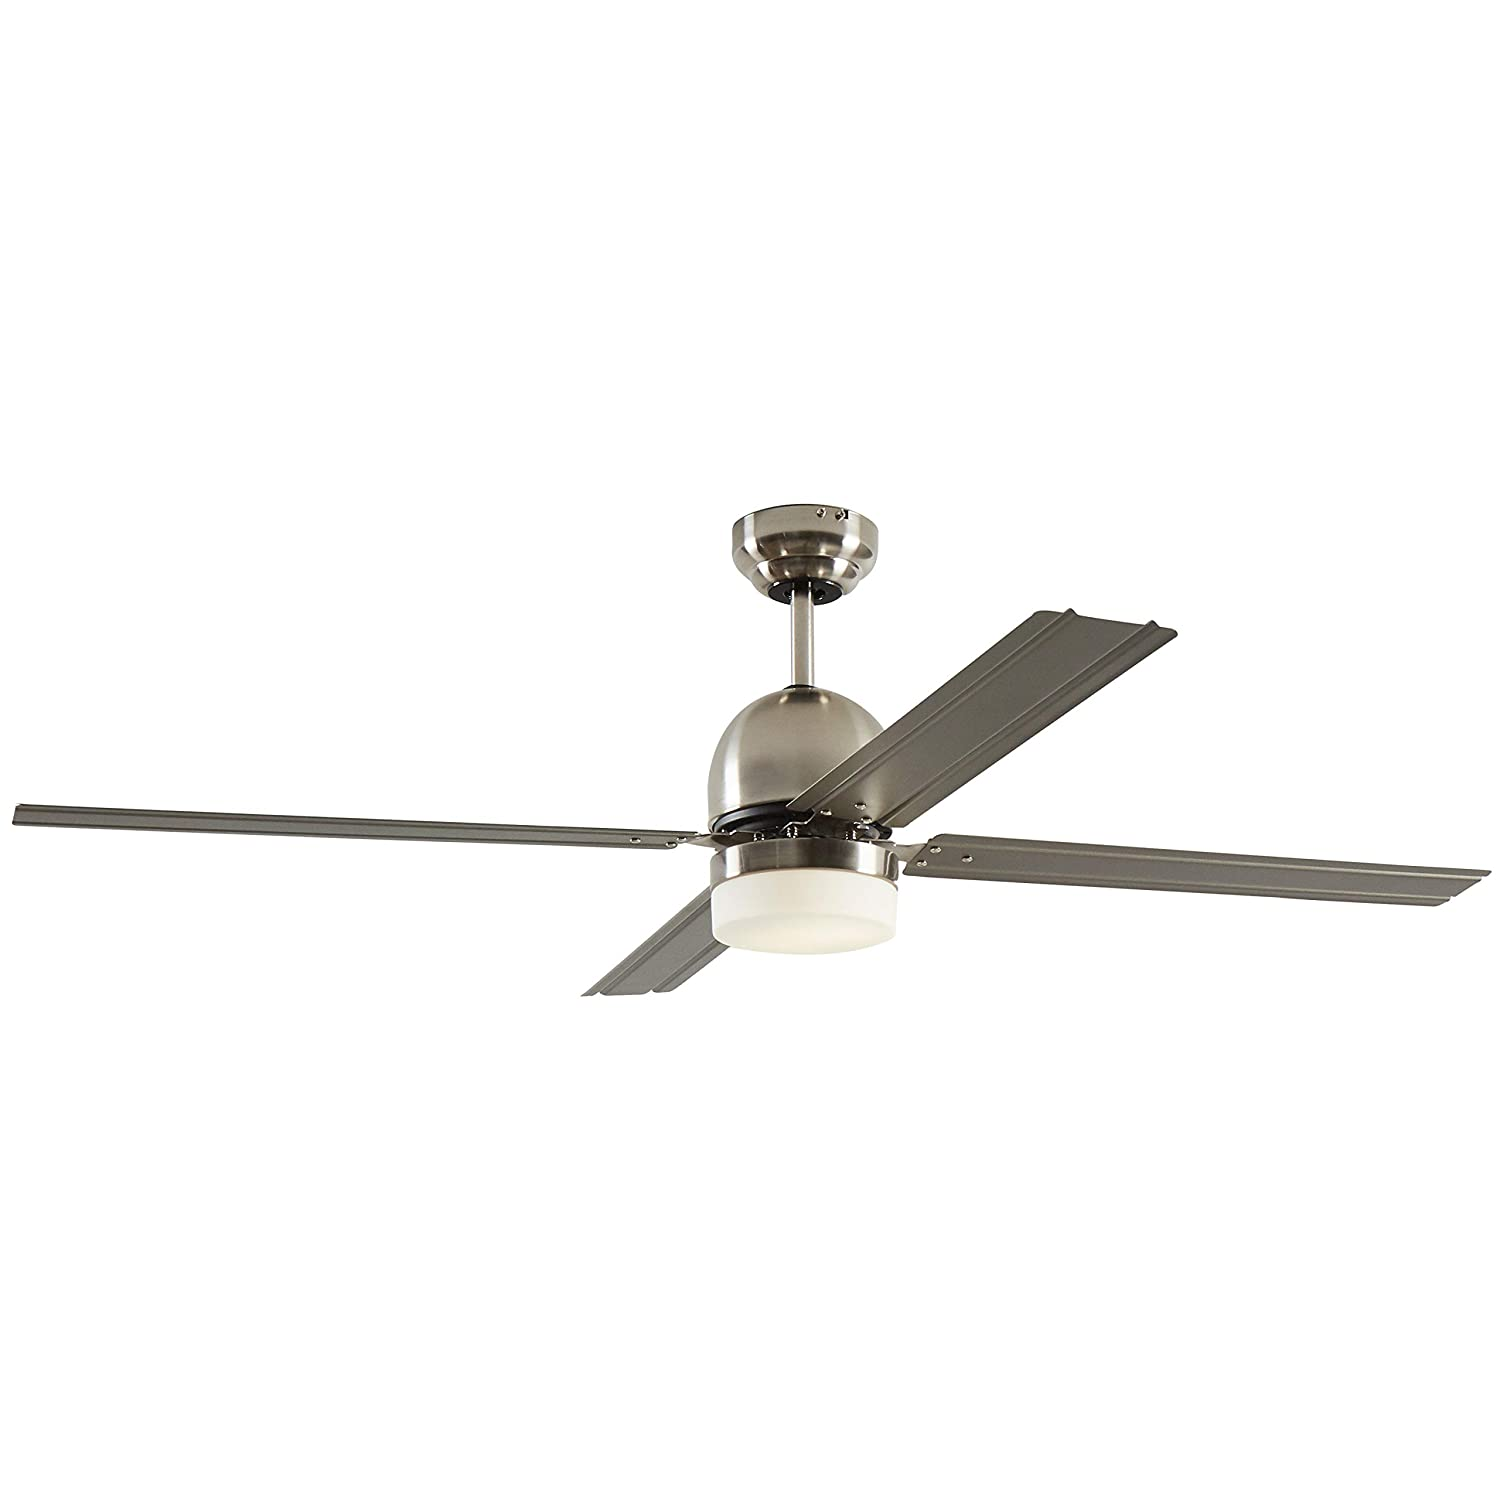 Rivet Modern Straight Blade Remote Control Flush Mount Ceiling Fan with Integrated LED Light – 53 x 53 x 16 Inches, Brushed Nickel